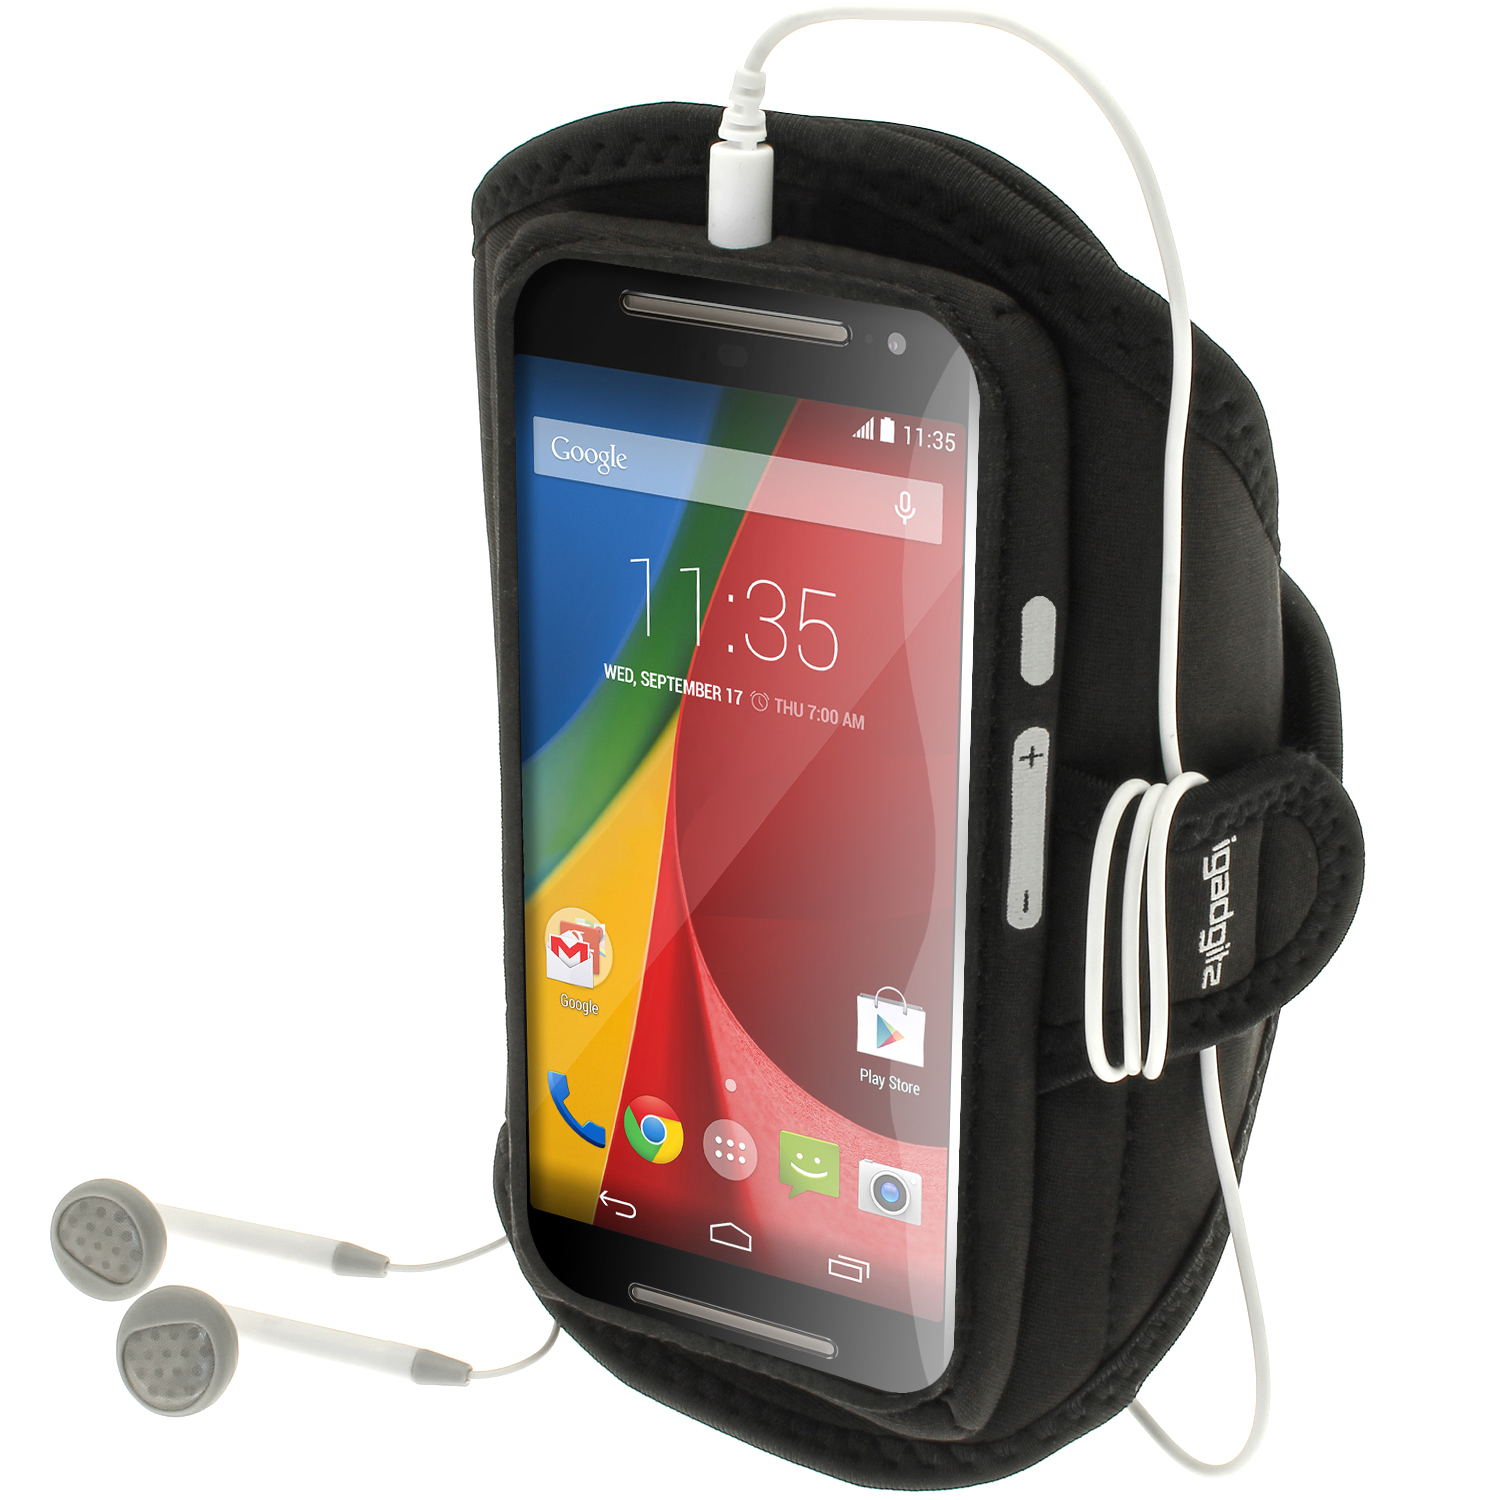 iGadgitz Water Resistant Sports Jogging Gym Armband for Motorola Moto G 2nd Generation & Moto G 3rd Generation